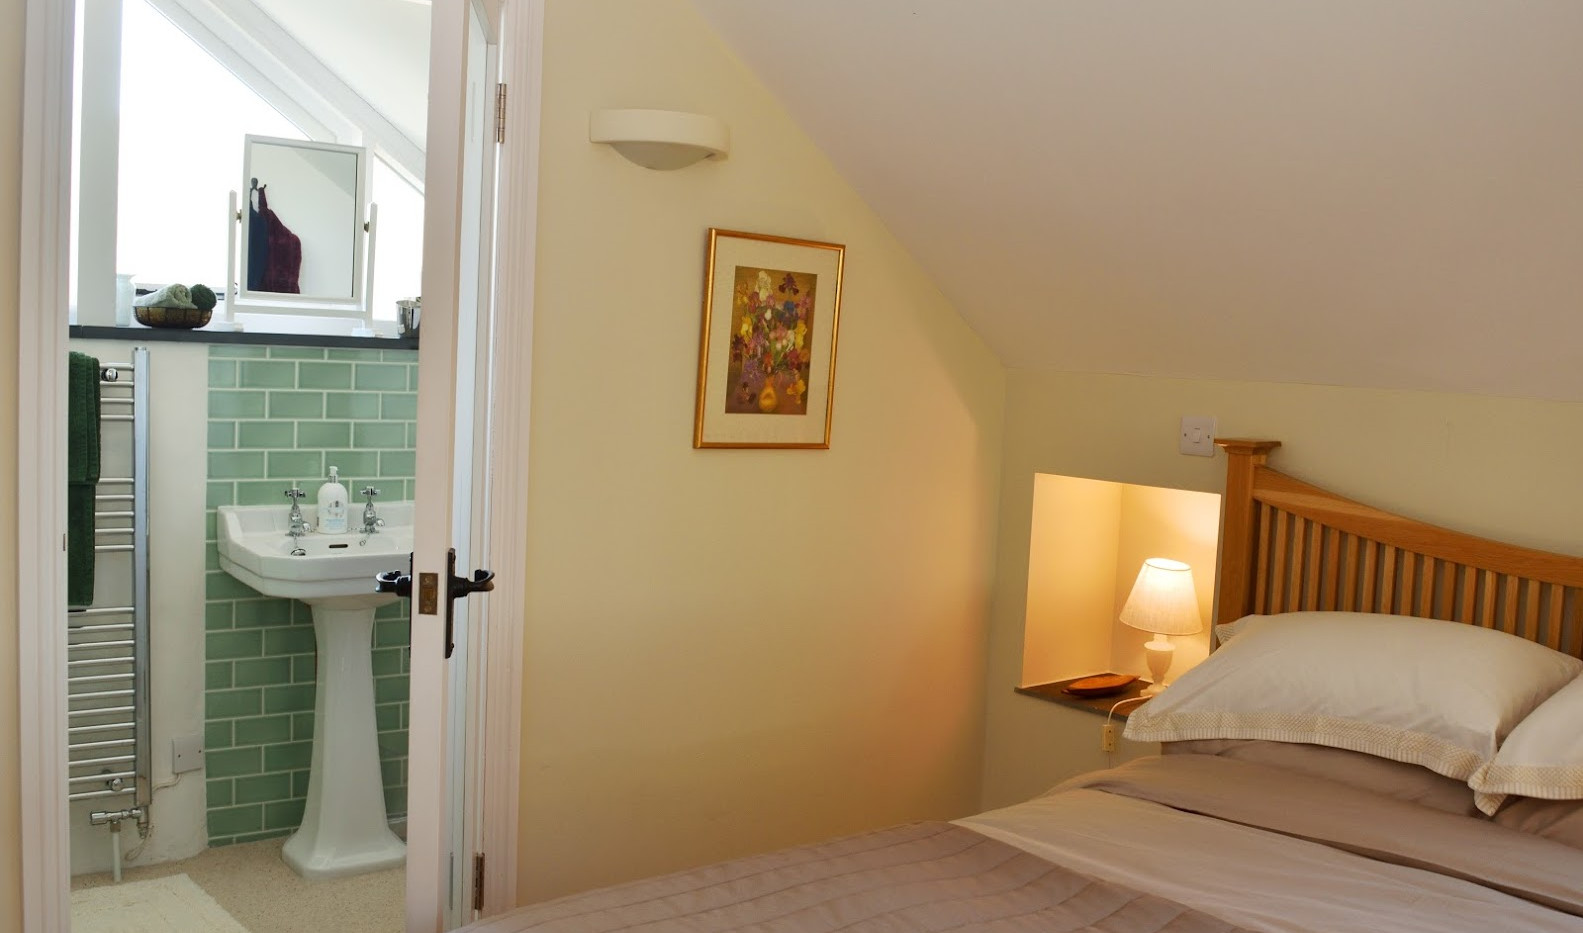 Bedroom with ensuite shower room and heated towel rail